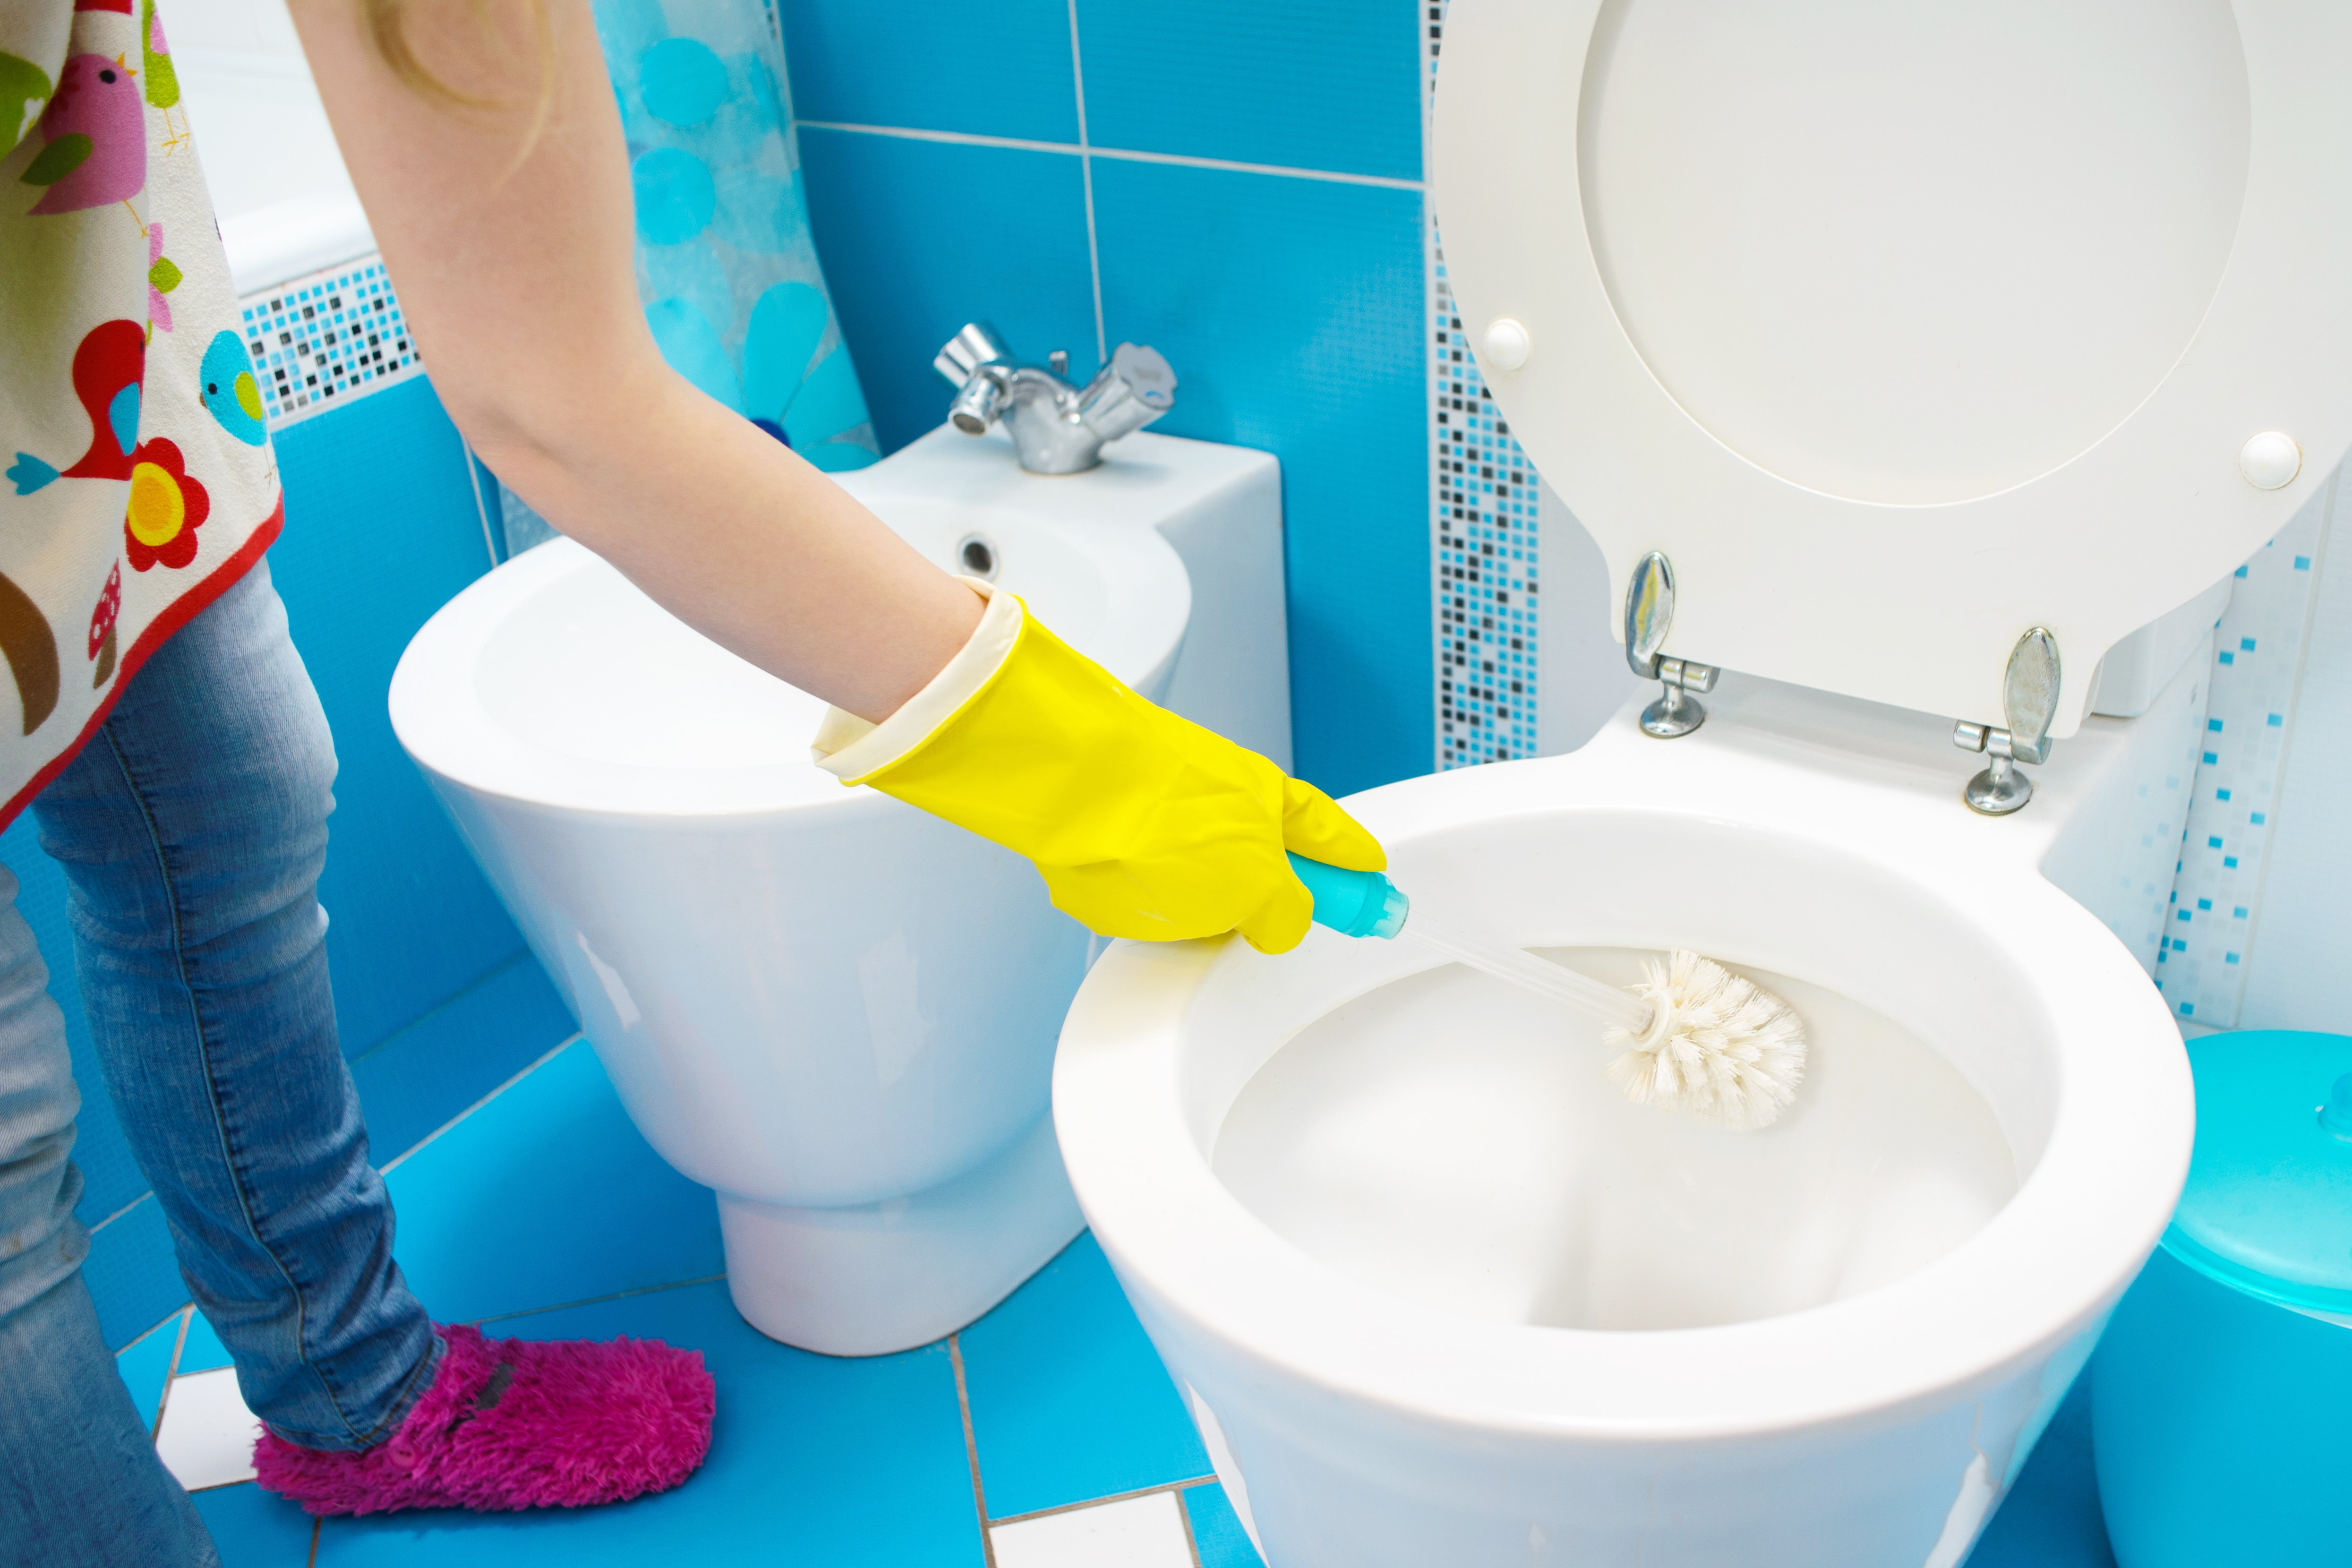 A woman cleans a bathroom toilet | Photo: Shutterstock